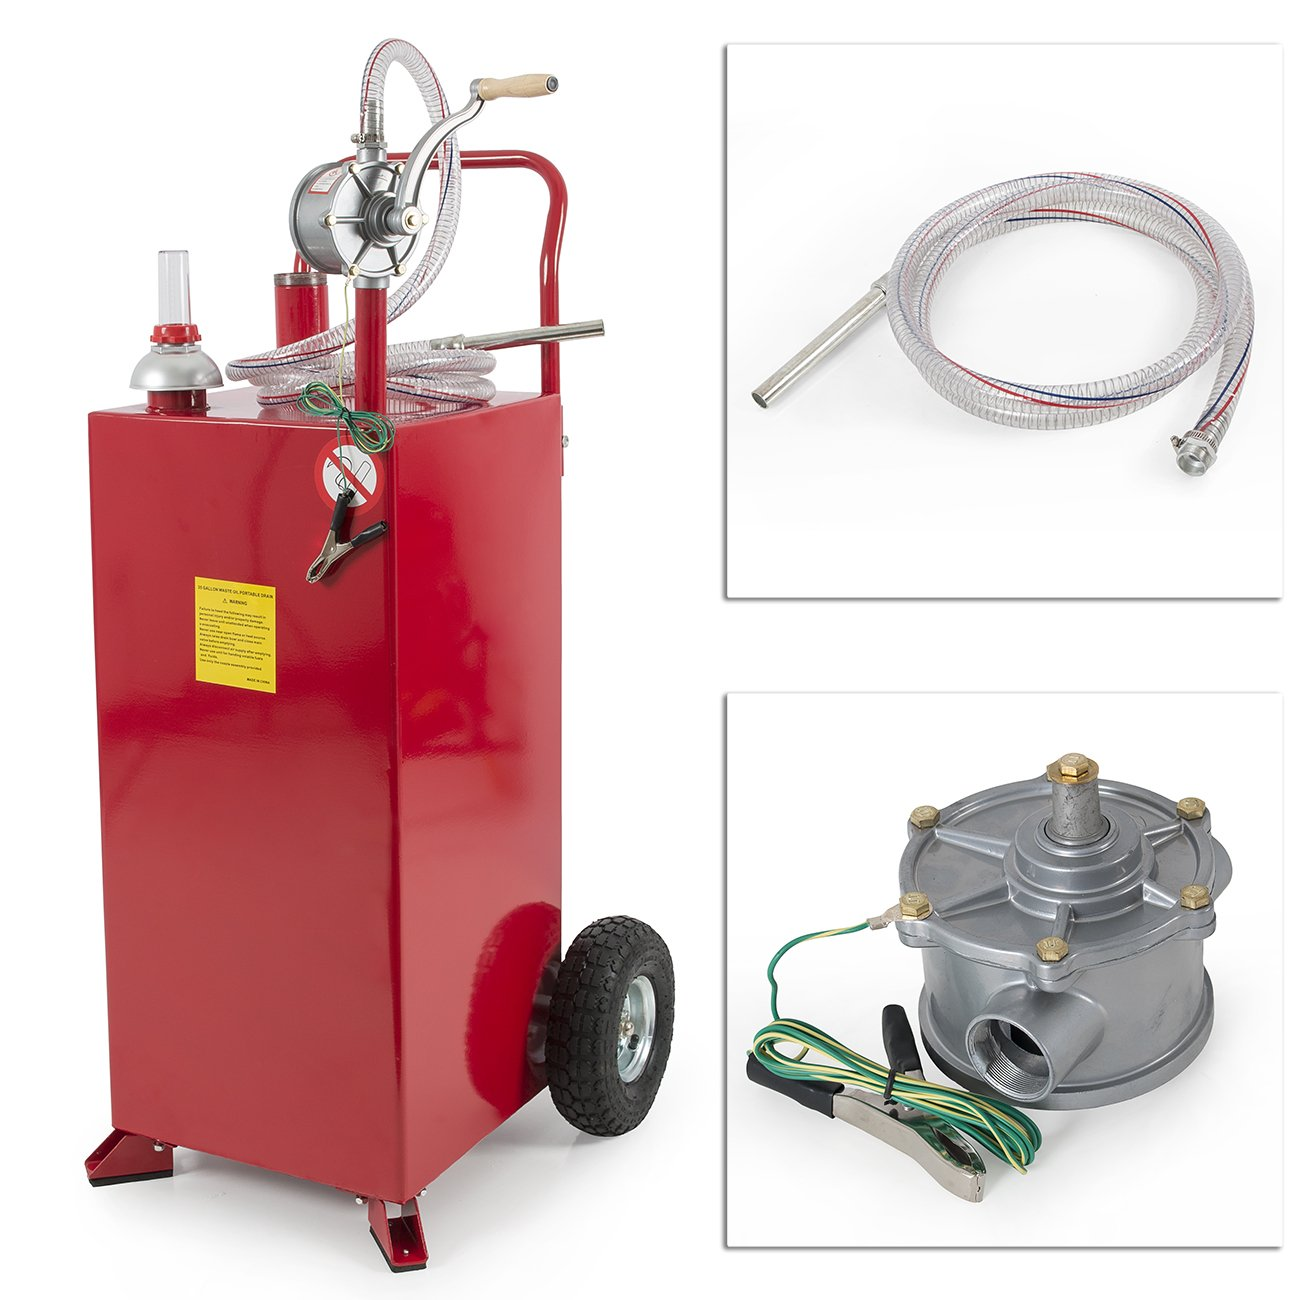 Arksen 30 Gallon Portable Fuel Transfer Gas Can Caddy Storage Gasoline Tank Heavy Duty 30-Gallons Capacity- Red